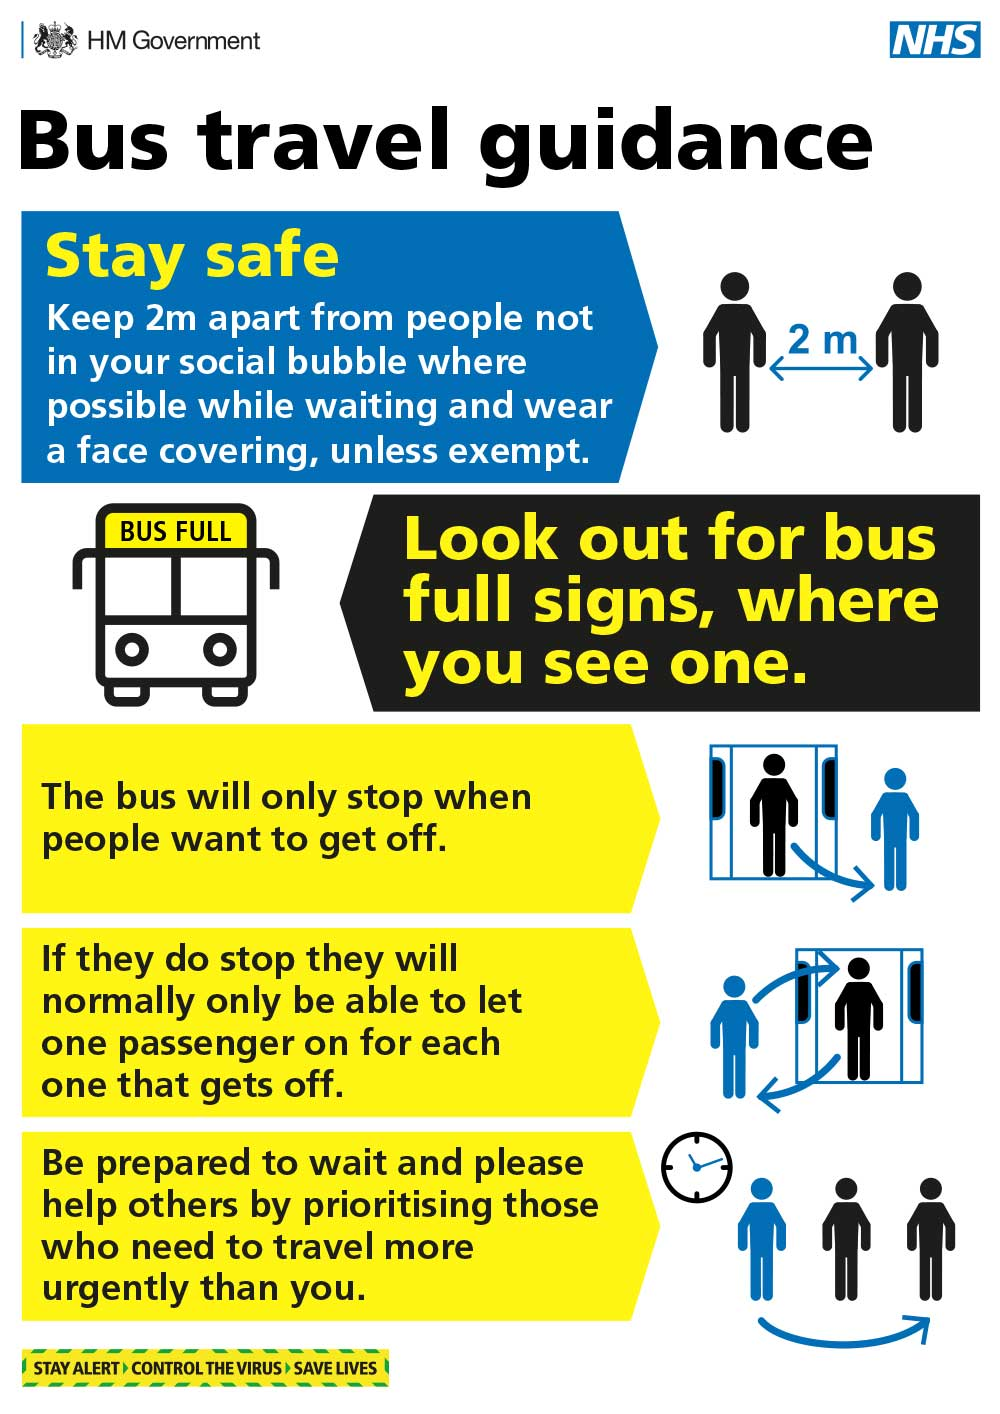 Bus travel guidance. Stay safe: Keep 2m apart from people not in your social bubble where possible while waiting and wear a face covering, unless exempt. Look out for bus full signs, where you see one. The bus will only stop when people want to get off. If they do stop they will normally only be able to let one passenger on for each one that gets off. Be prepared to wait and please help others by prioritising those who need to travel more urgently than you.